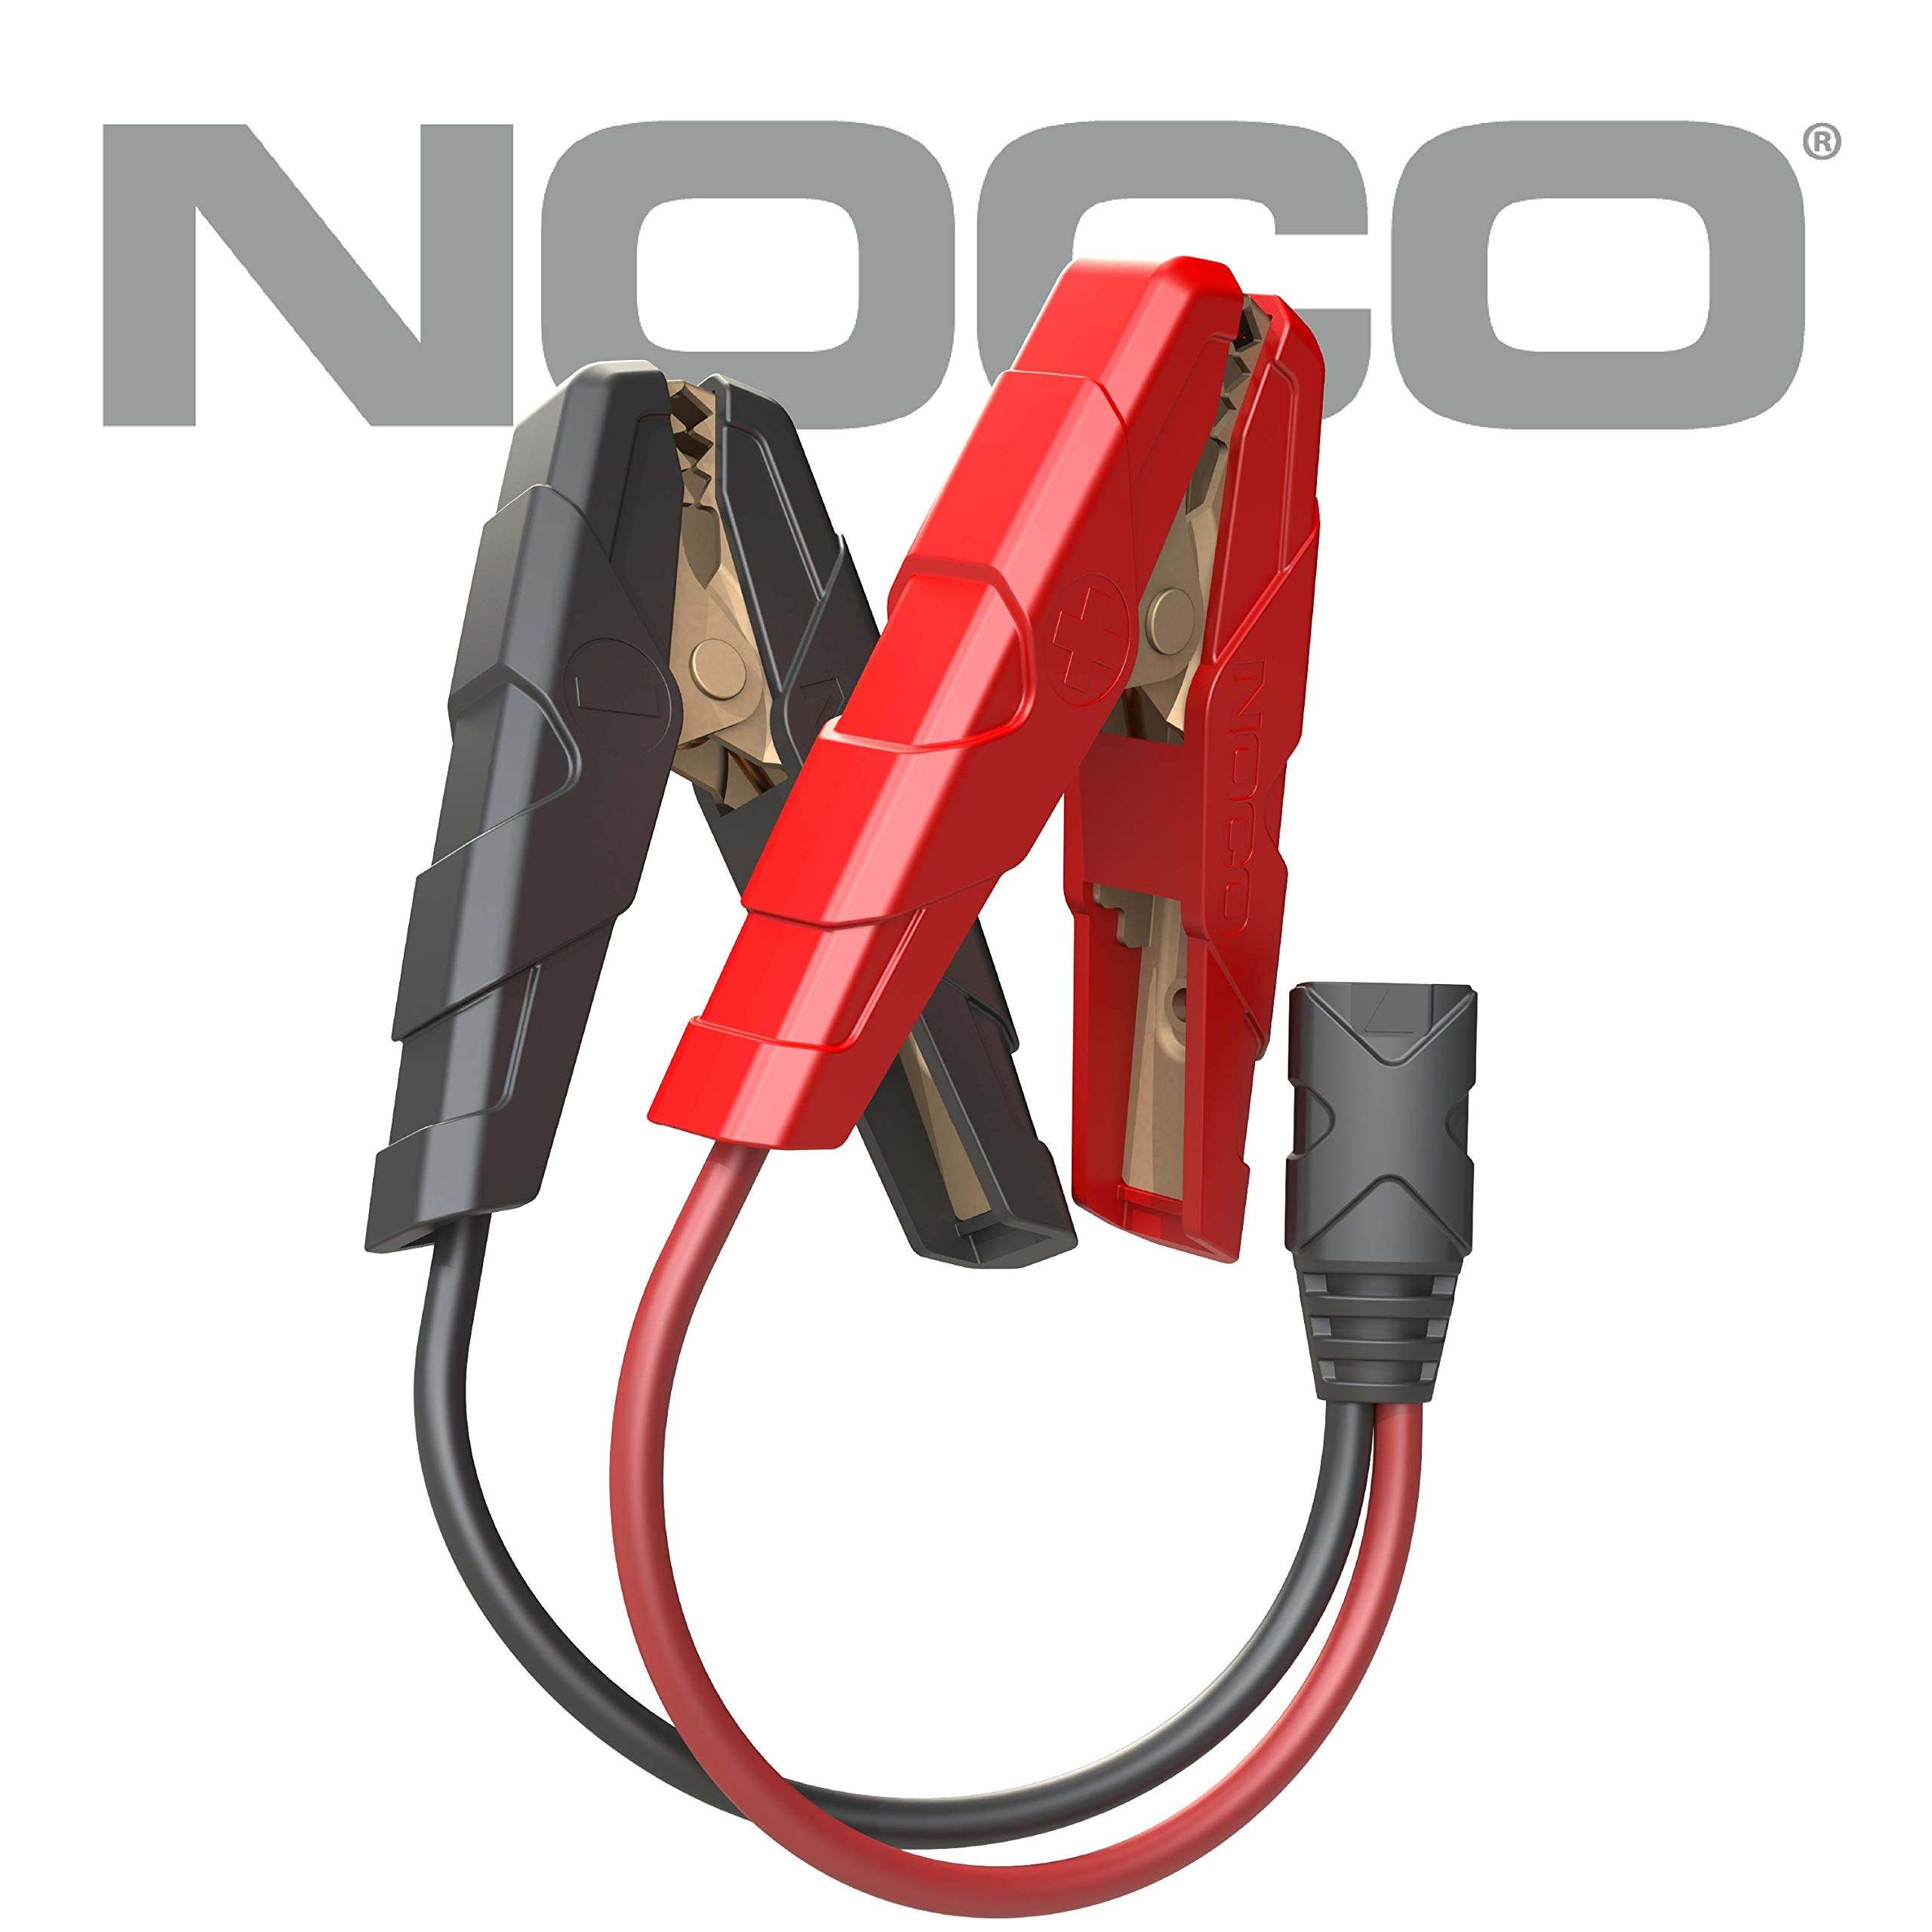 NOCO GBC001 Boost Replacement HD Battery Clamp Accessory by NOCO